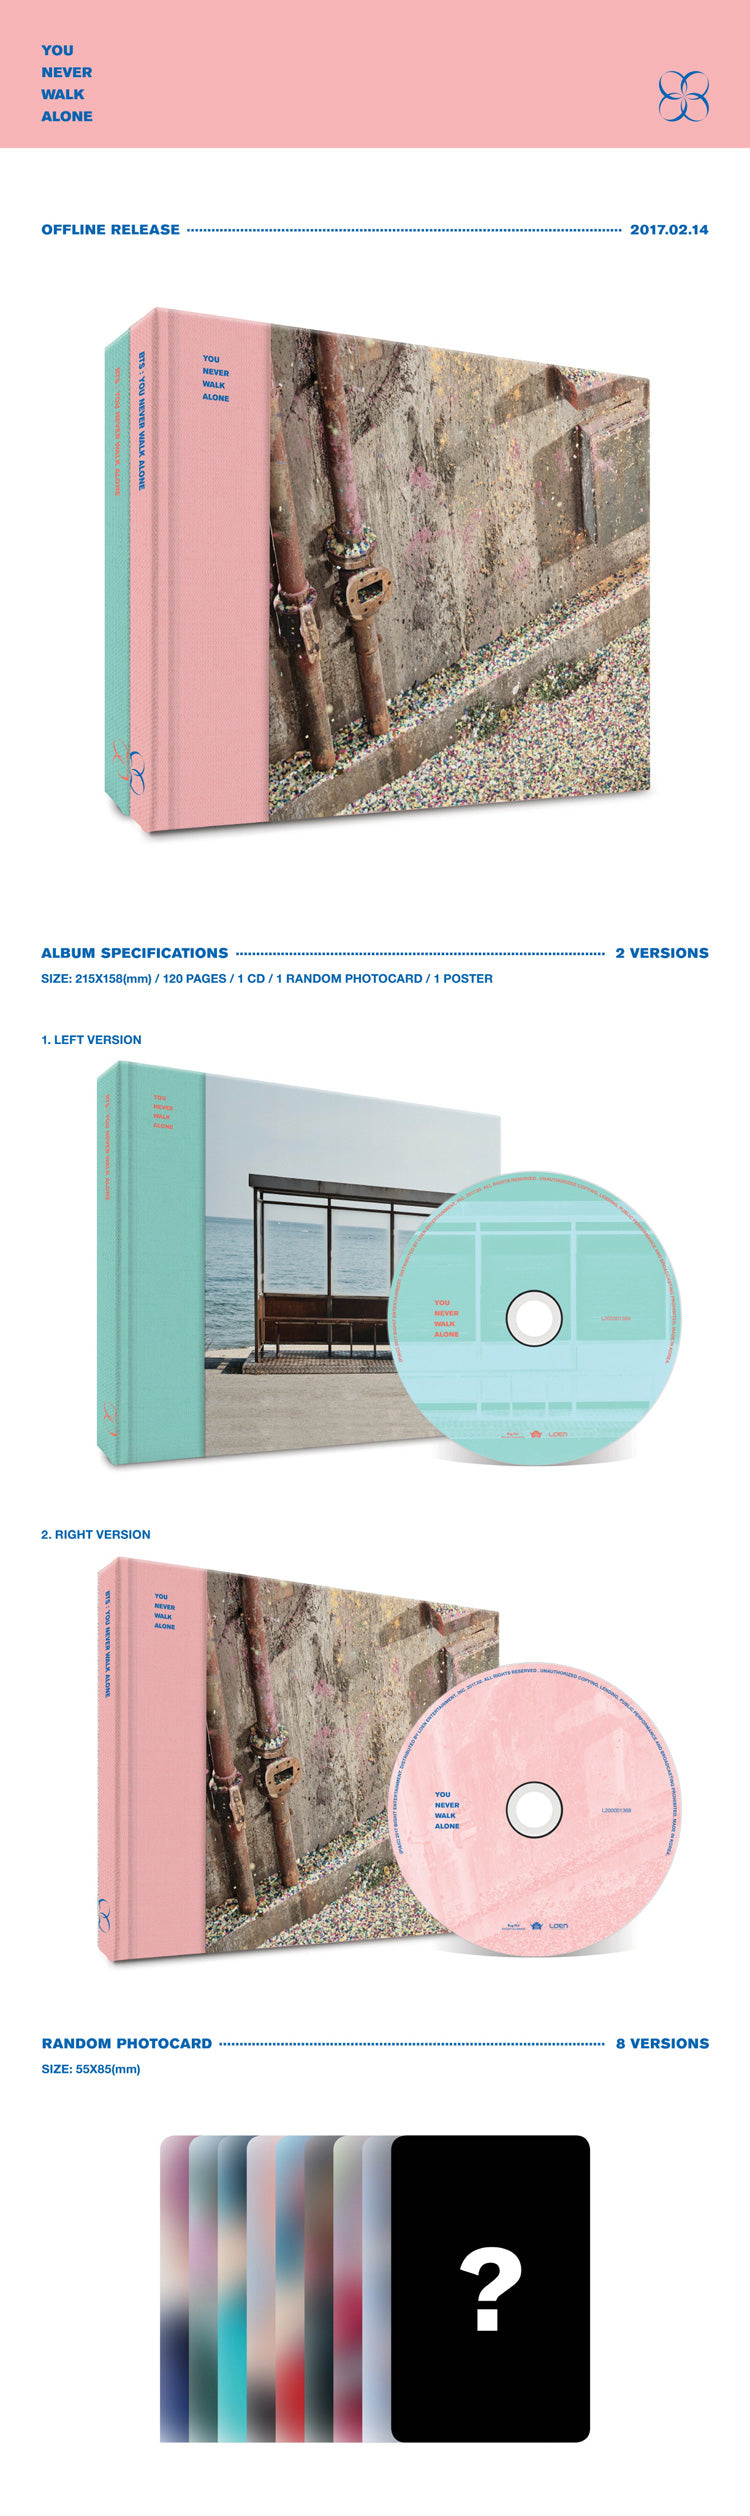 BTS - 2nd Album Repackage [You Never Walk Alone]